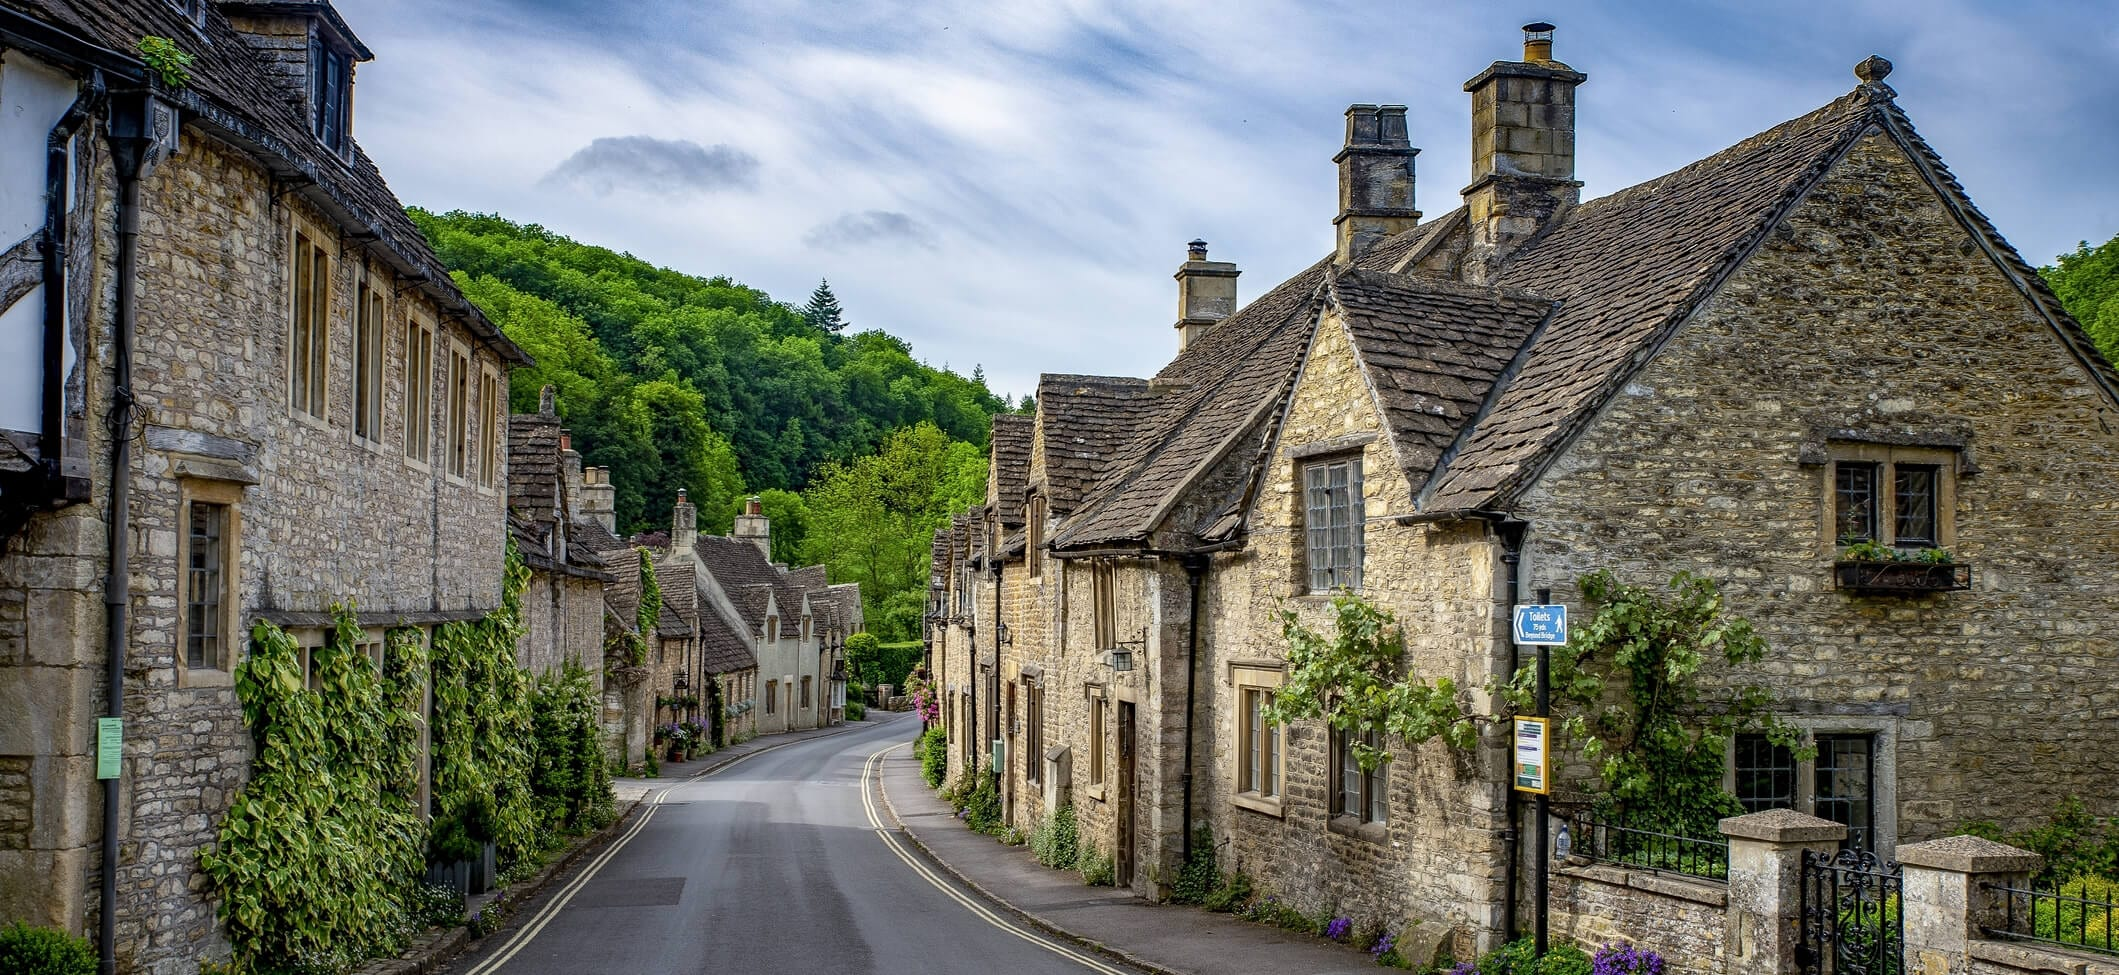 Brick stone houses in the UK